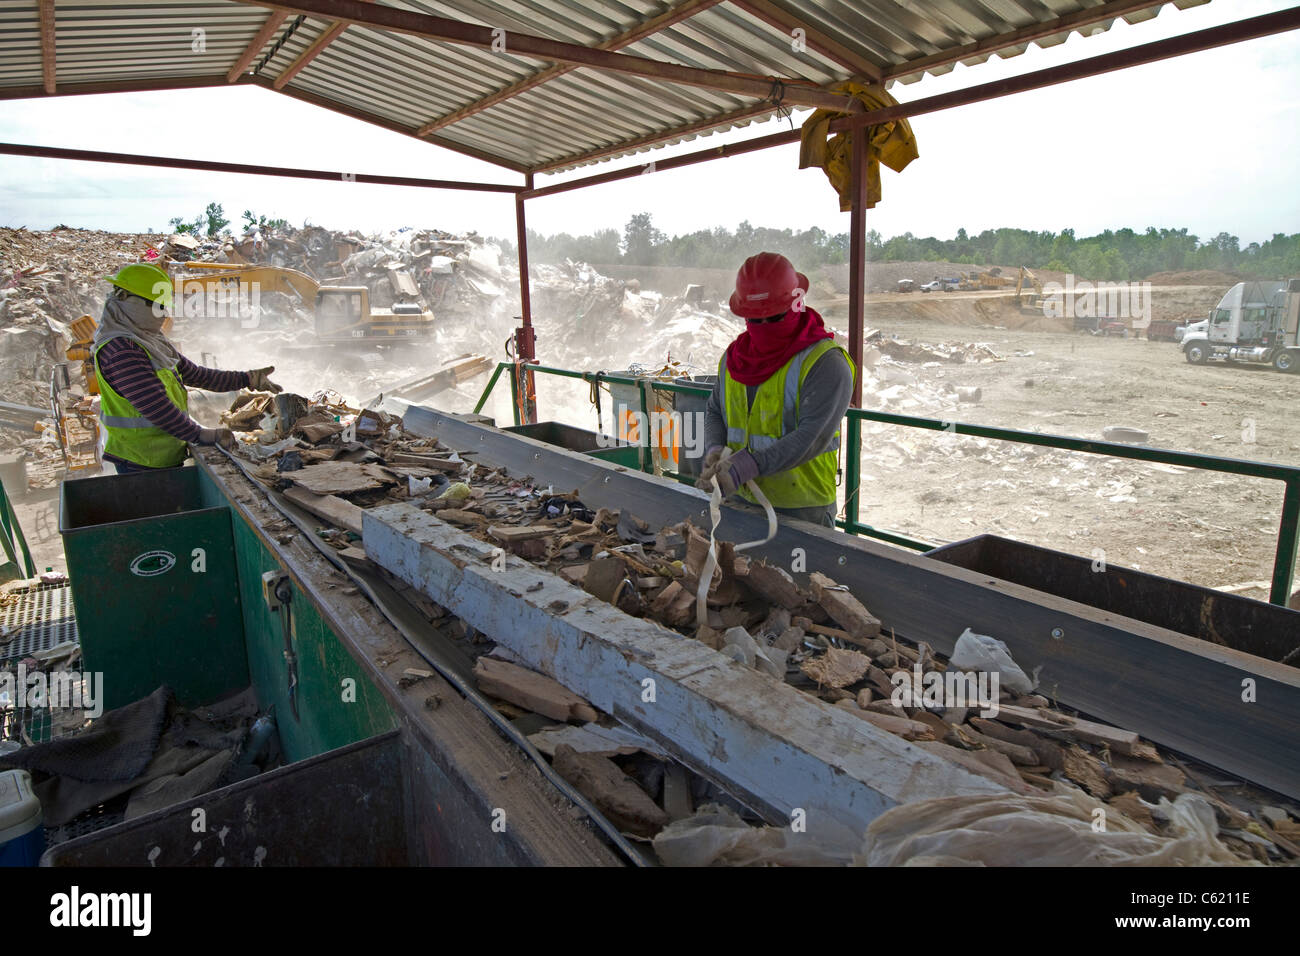 Workers sorting recyclables at landfill - Stock Image